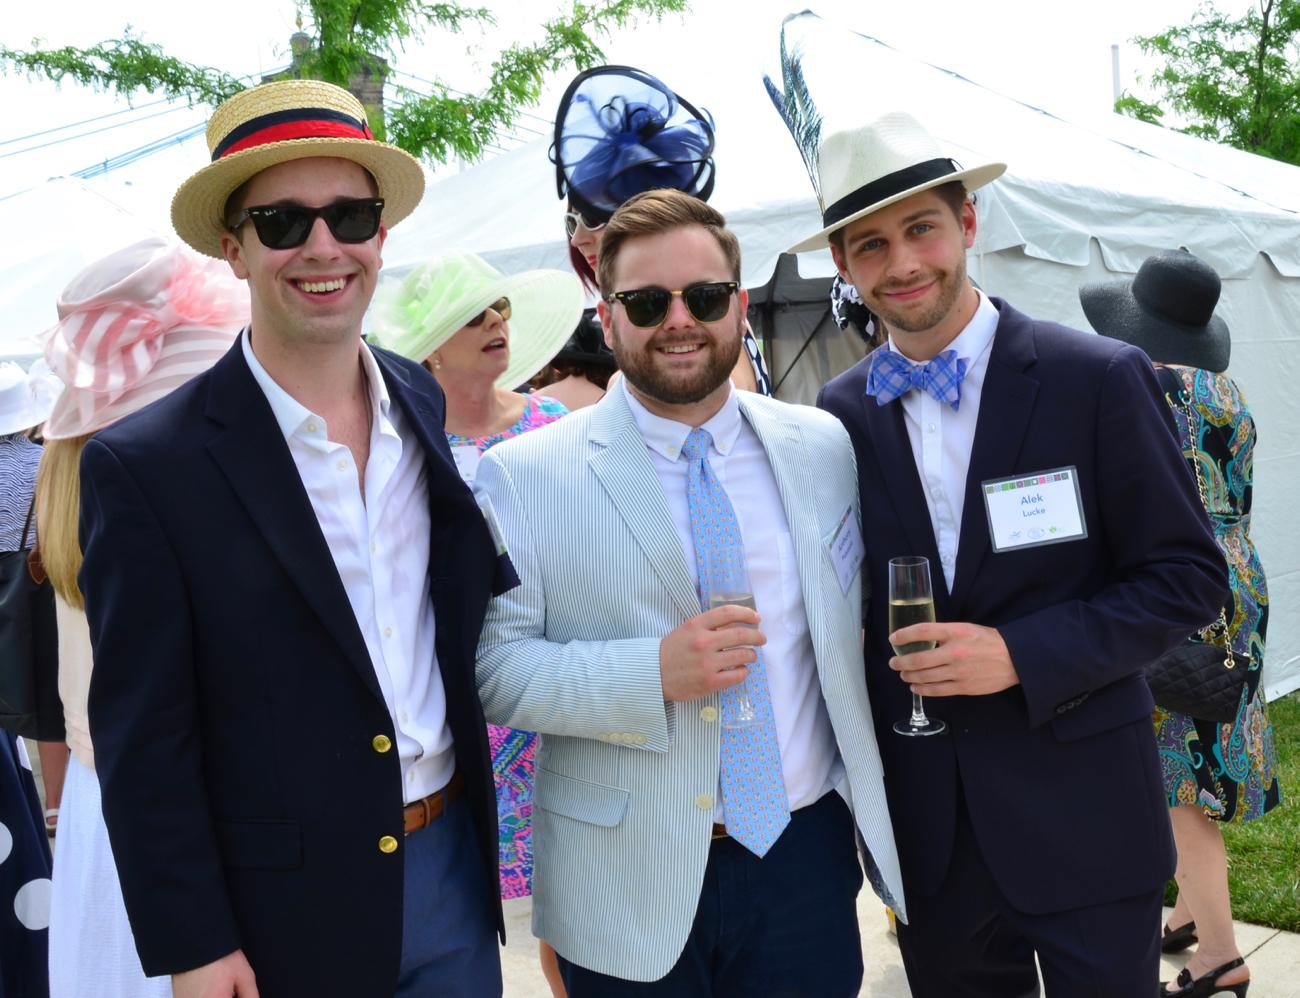 Andrew Saab, Anthony Palazzolo, and Alex Lucke / Image: Leah Zipperstein, Cincinnati Refined // Published: 5.18.18